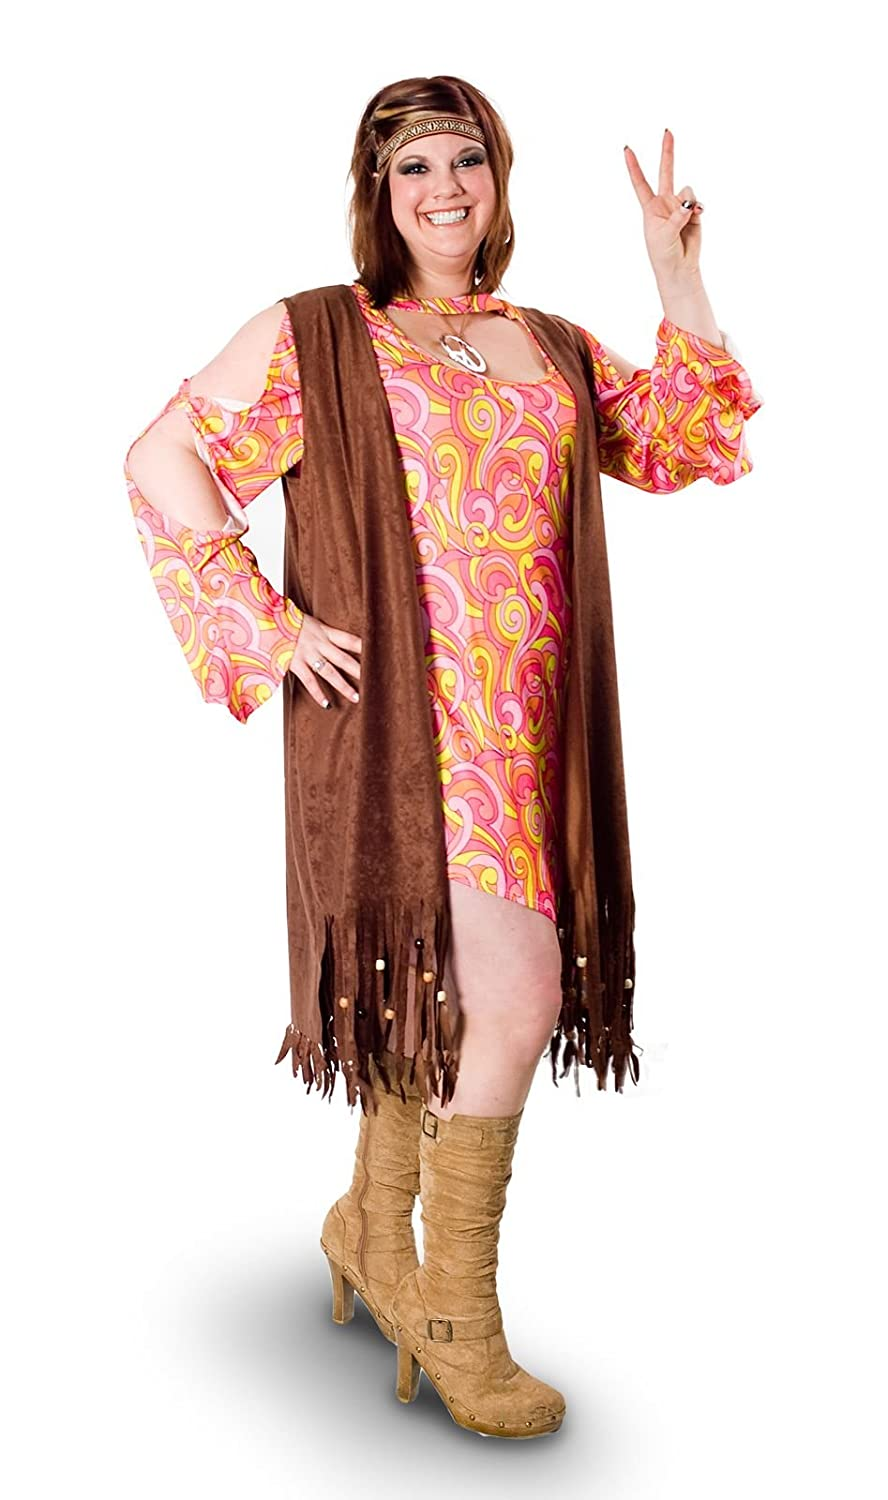 70s Costumes: Disco Costumes, Hippie Outfits Sunnywood Womens Plus-Size Lava Diva Funky Swirl Hippie Costume $42.58 AT vintagedancer.com